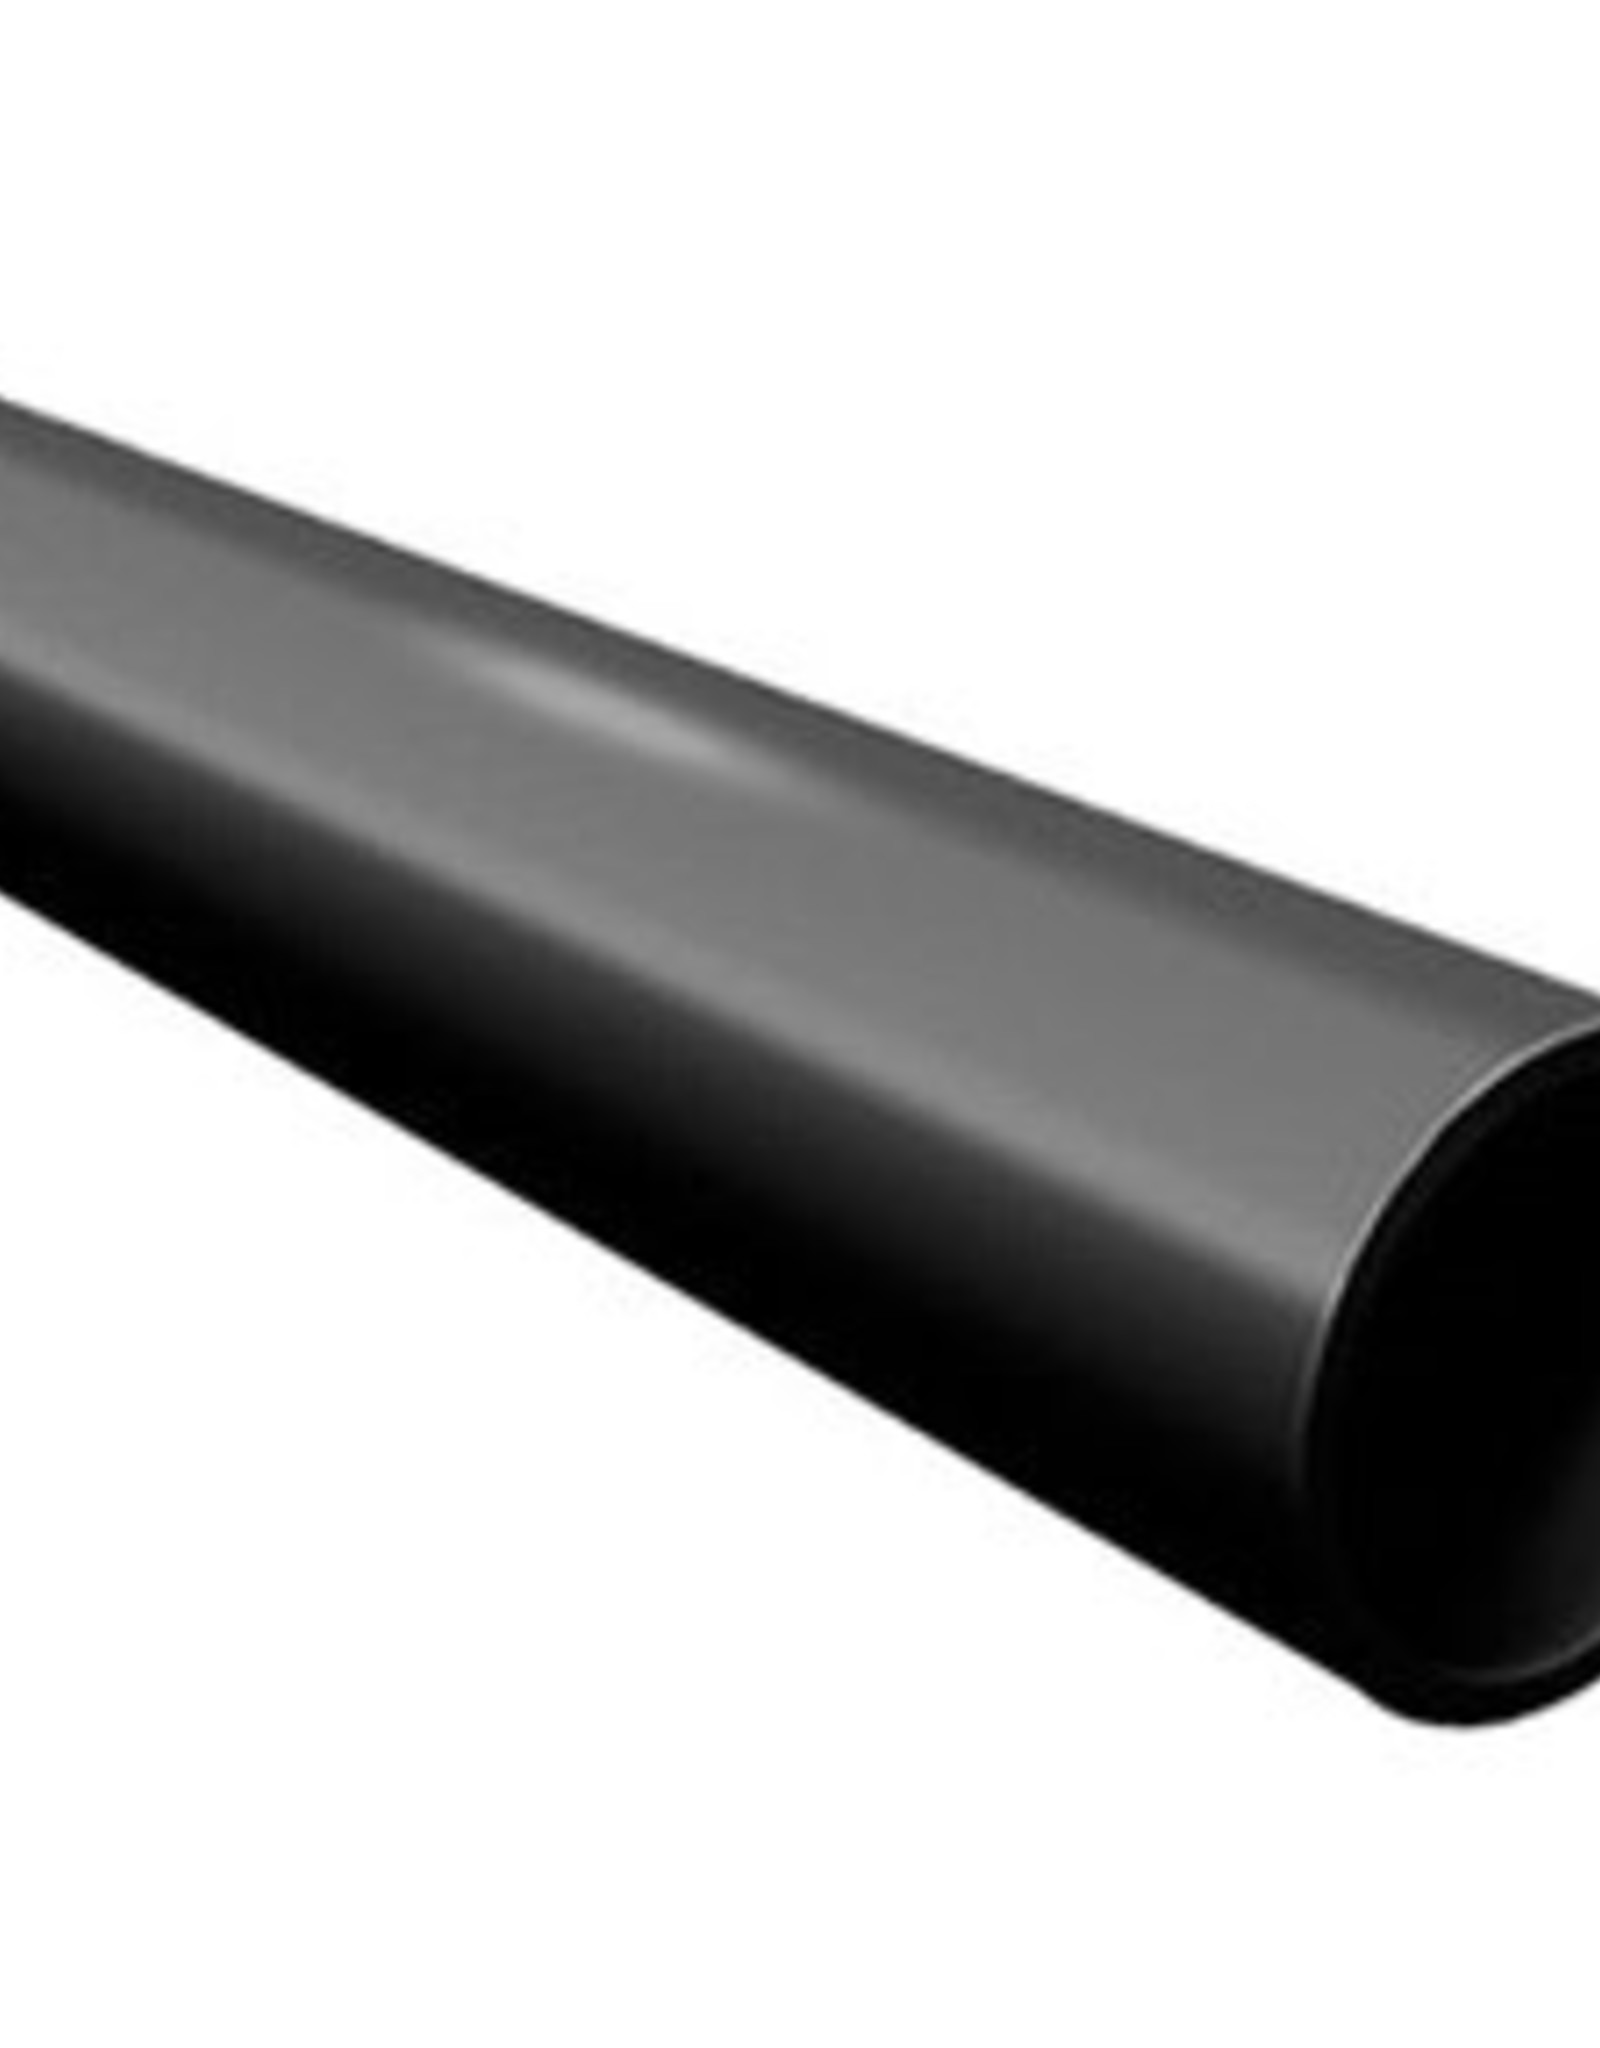 "4"" X 6' ABS DWV CELLCORE PIPE"